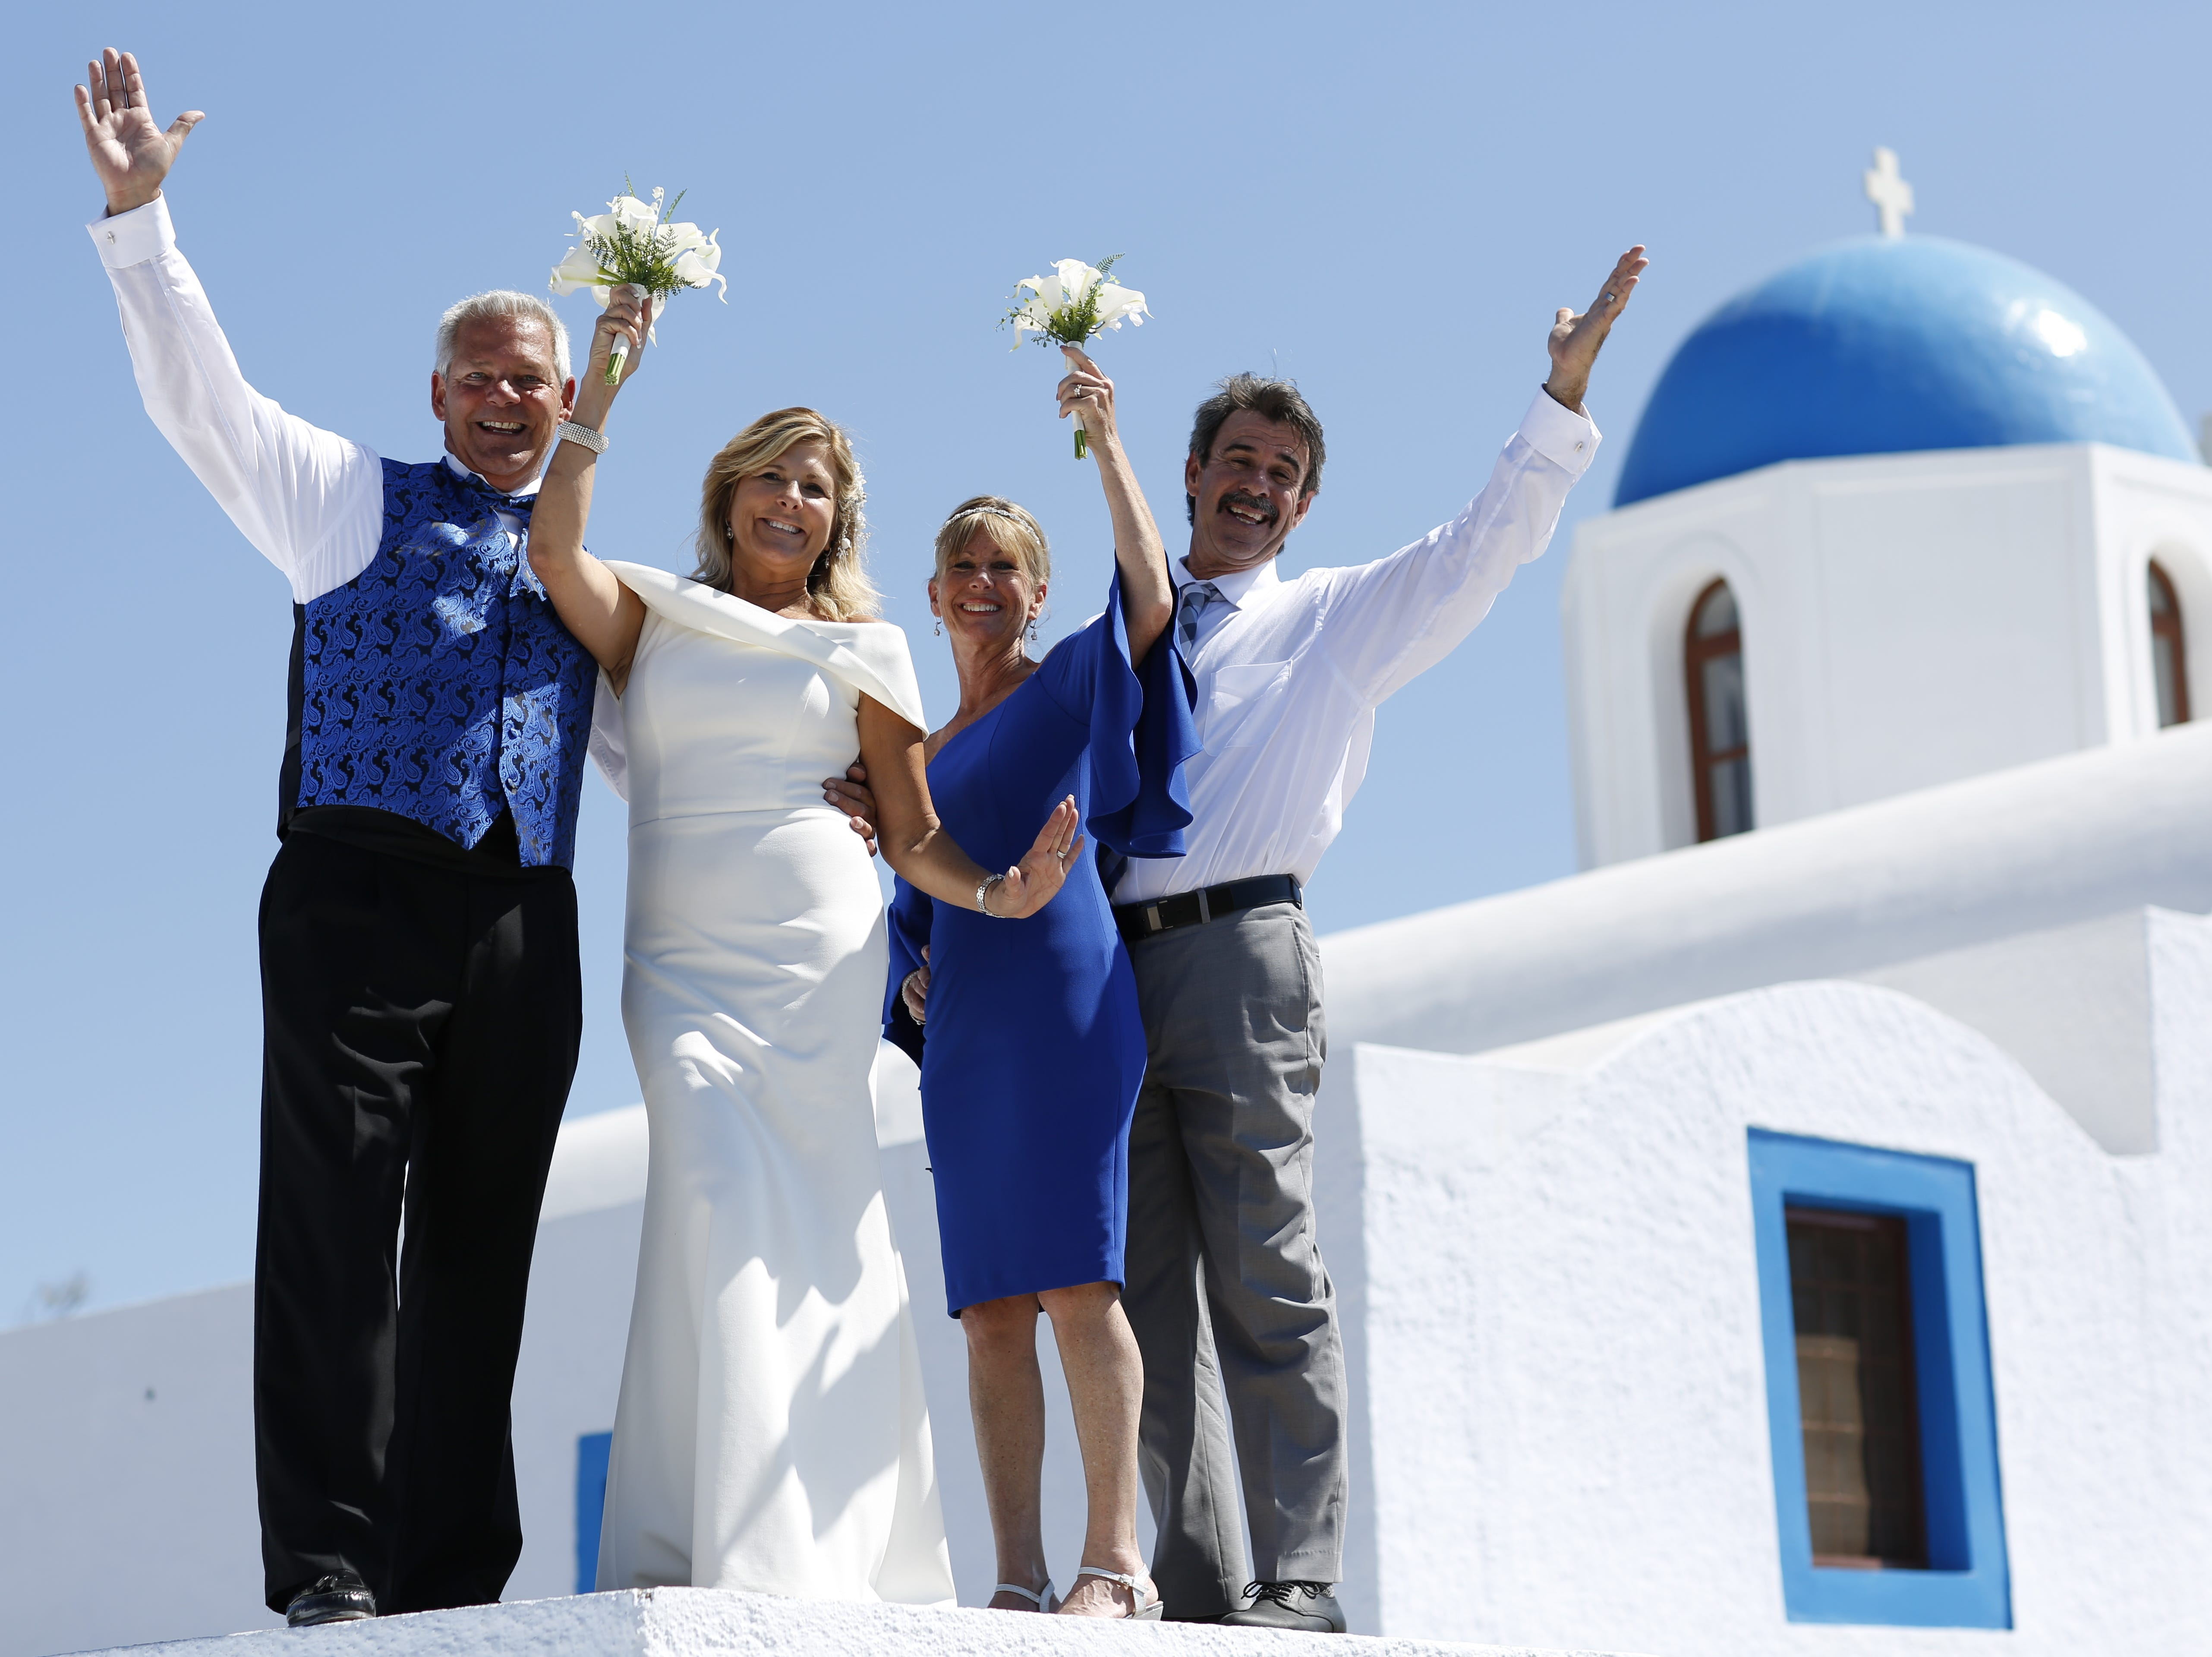 Naples travel advisor Pamela Price planned her own destination wedding on the Grecian island of Santorini in September. She married American Airlines pilot David Fisher, left. They had a couple of their best friends serve as witnesses.